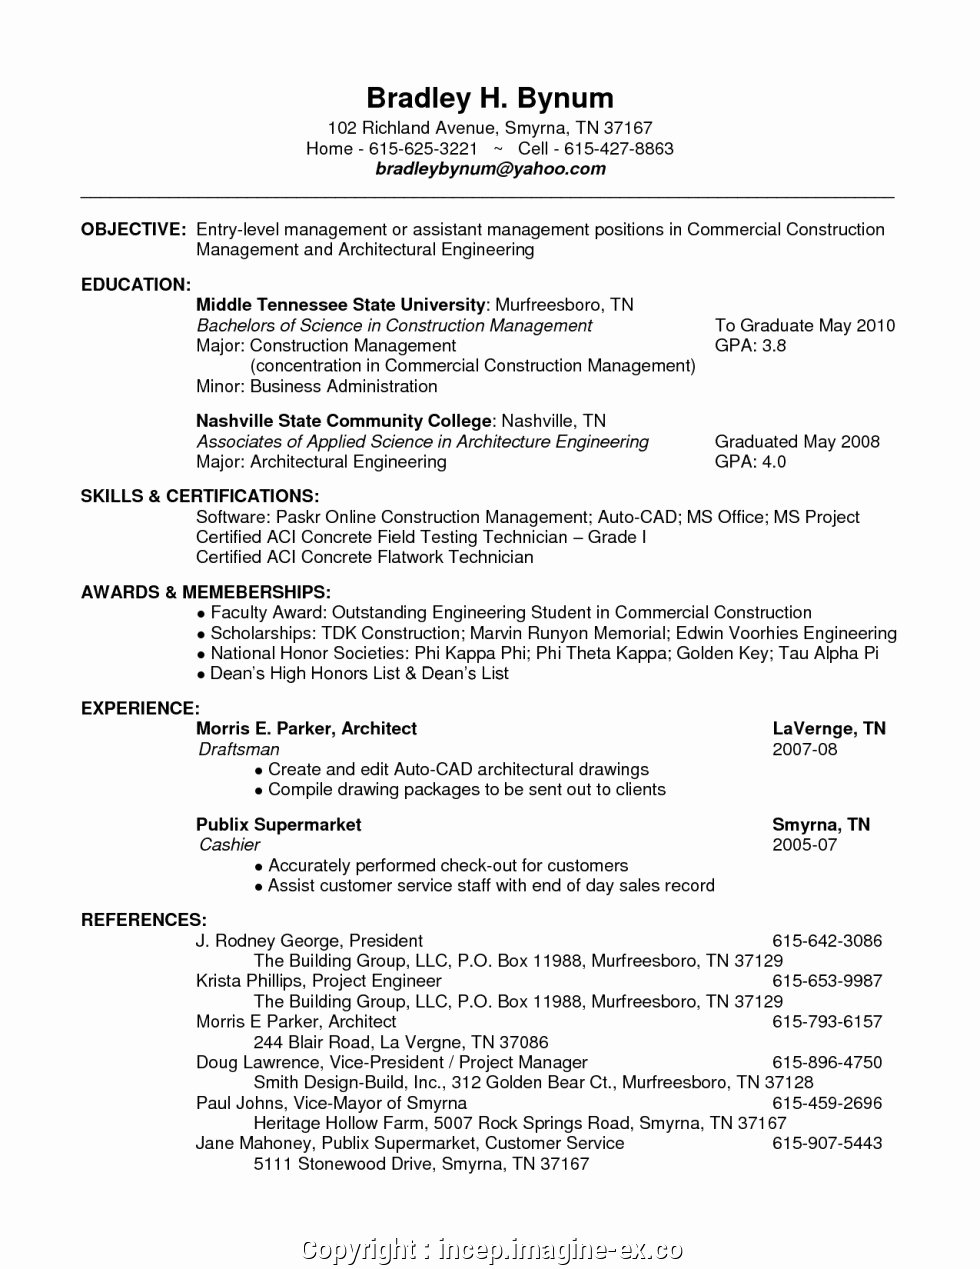 Grocery Store Manager Resume Best Of Modern Supermarket Manager Resume Resume for Grocery Store